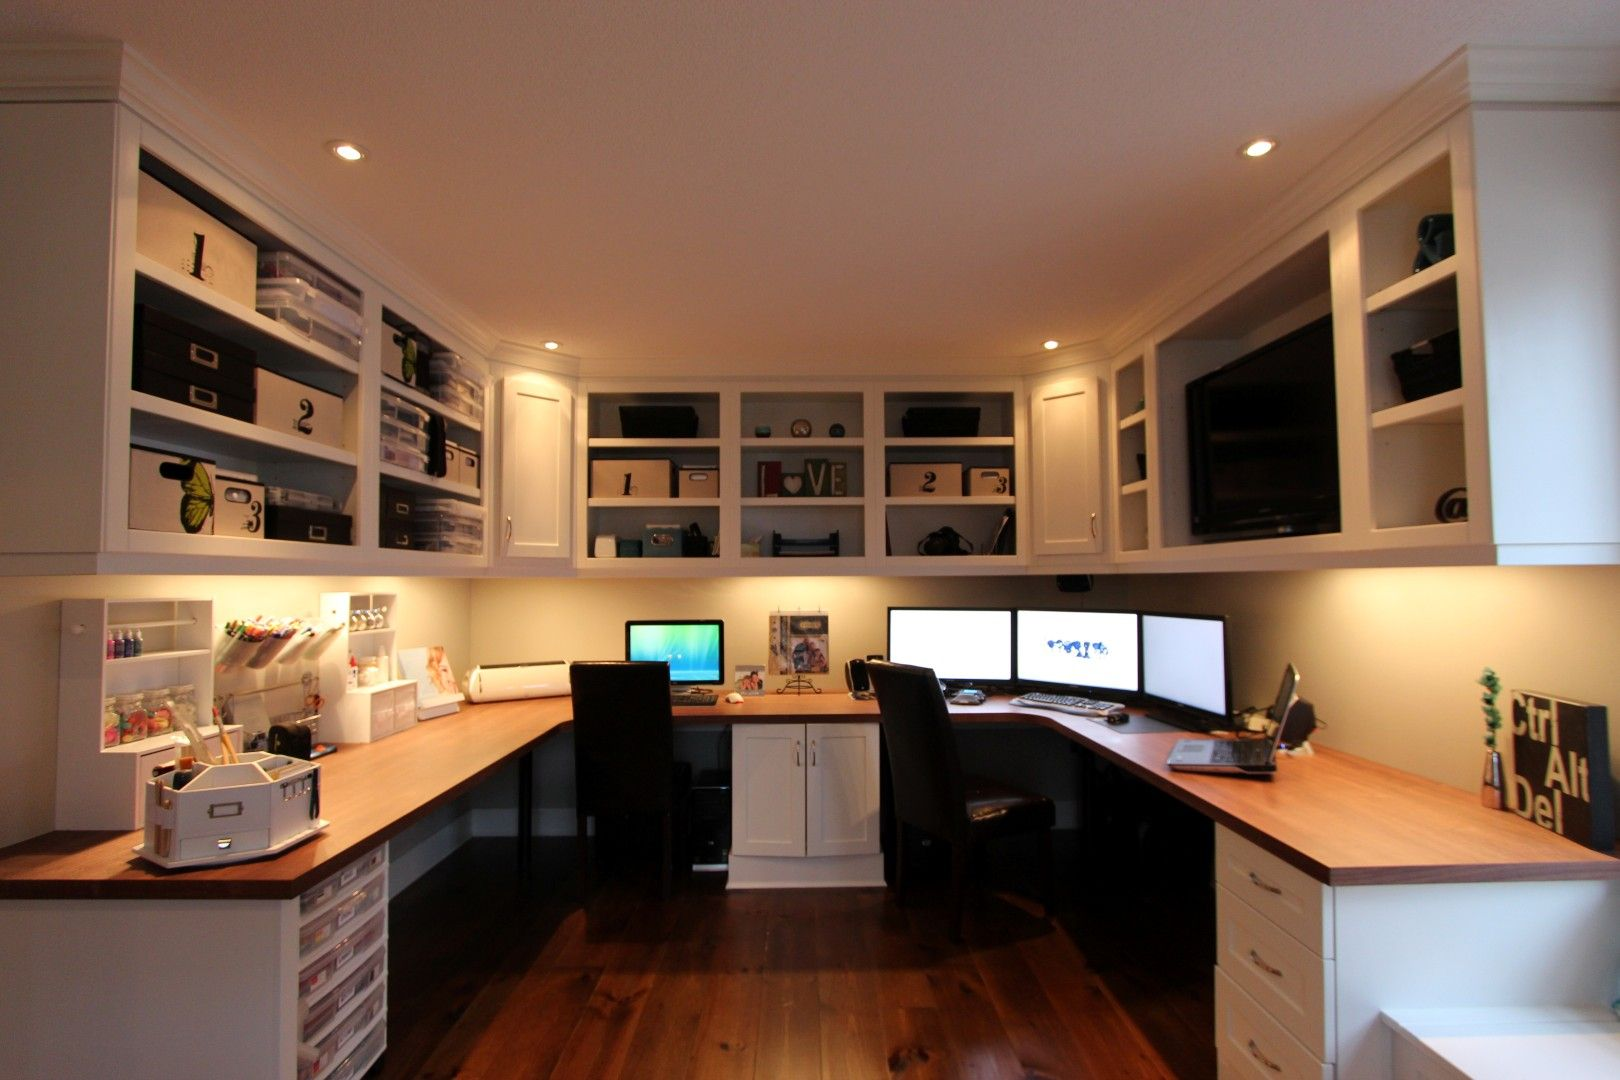 Genial Awesome Home Offices Http://officerenovationworkindelhi.wordpress.com/  Http://www.arkinteriordesigners.com